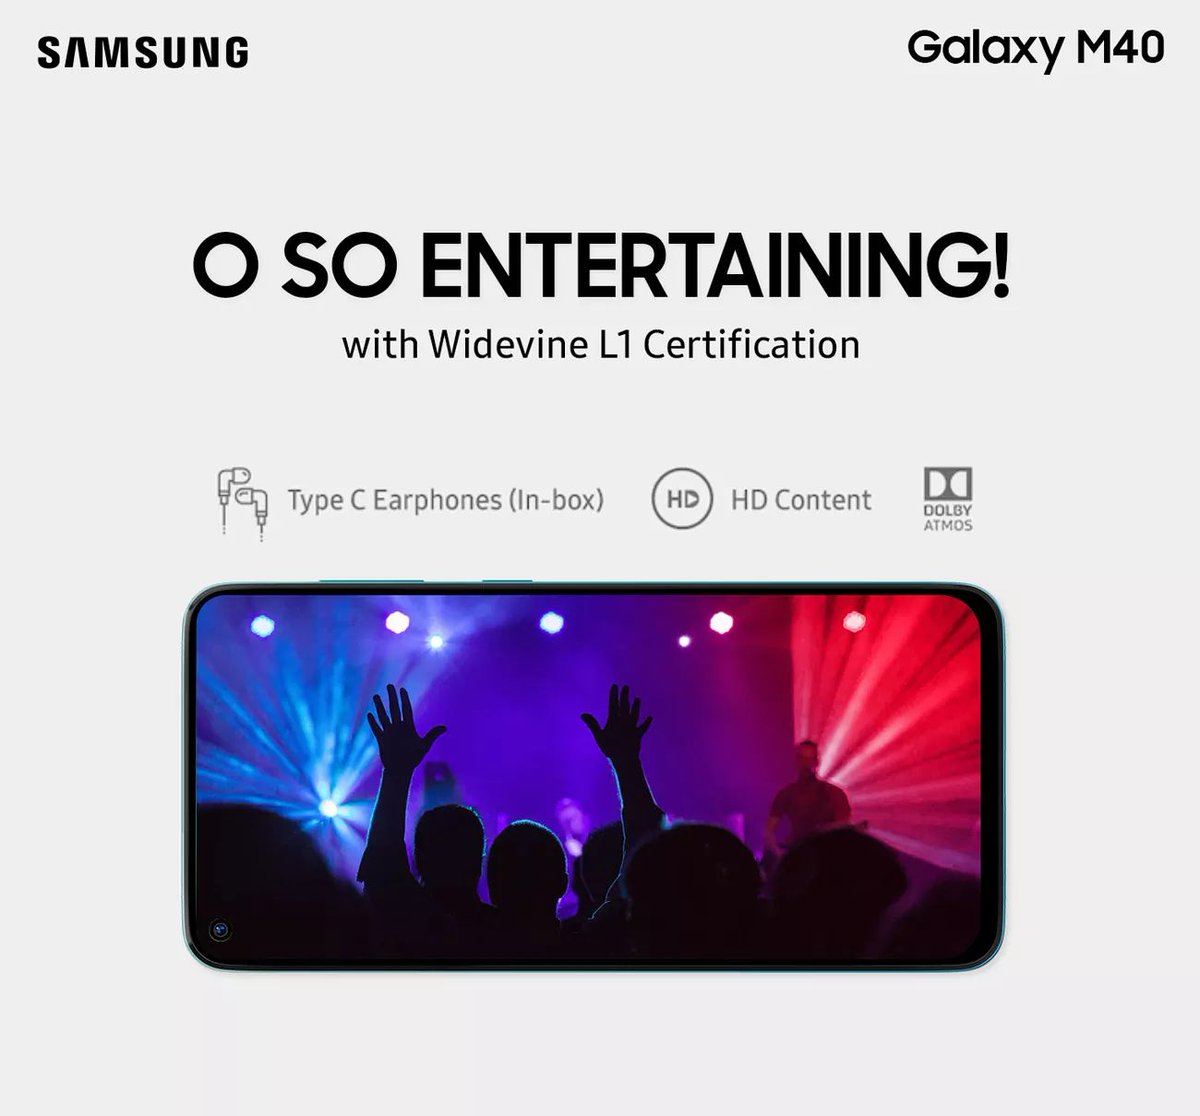 SamsungNepal tagged Tweets and Download Twitter MP4 Videos